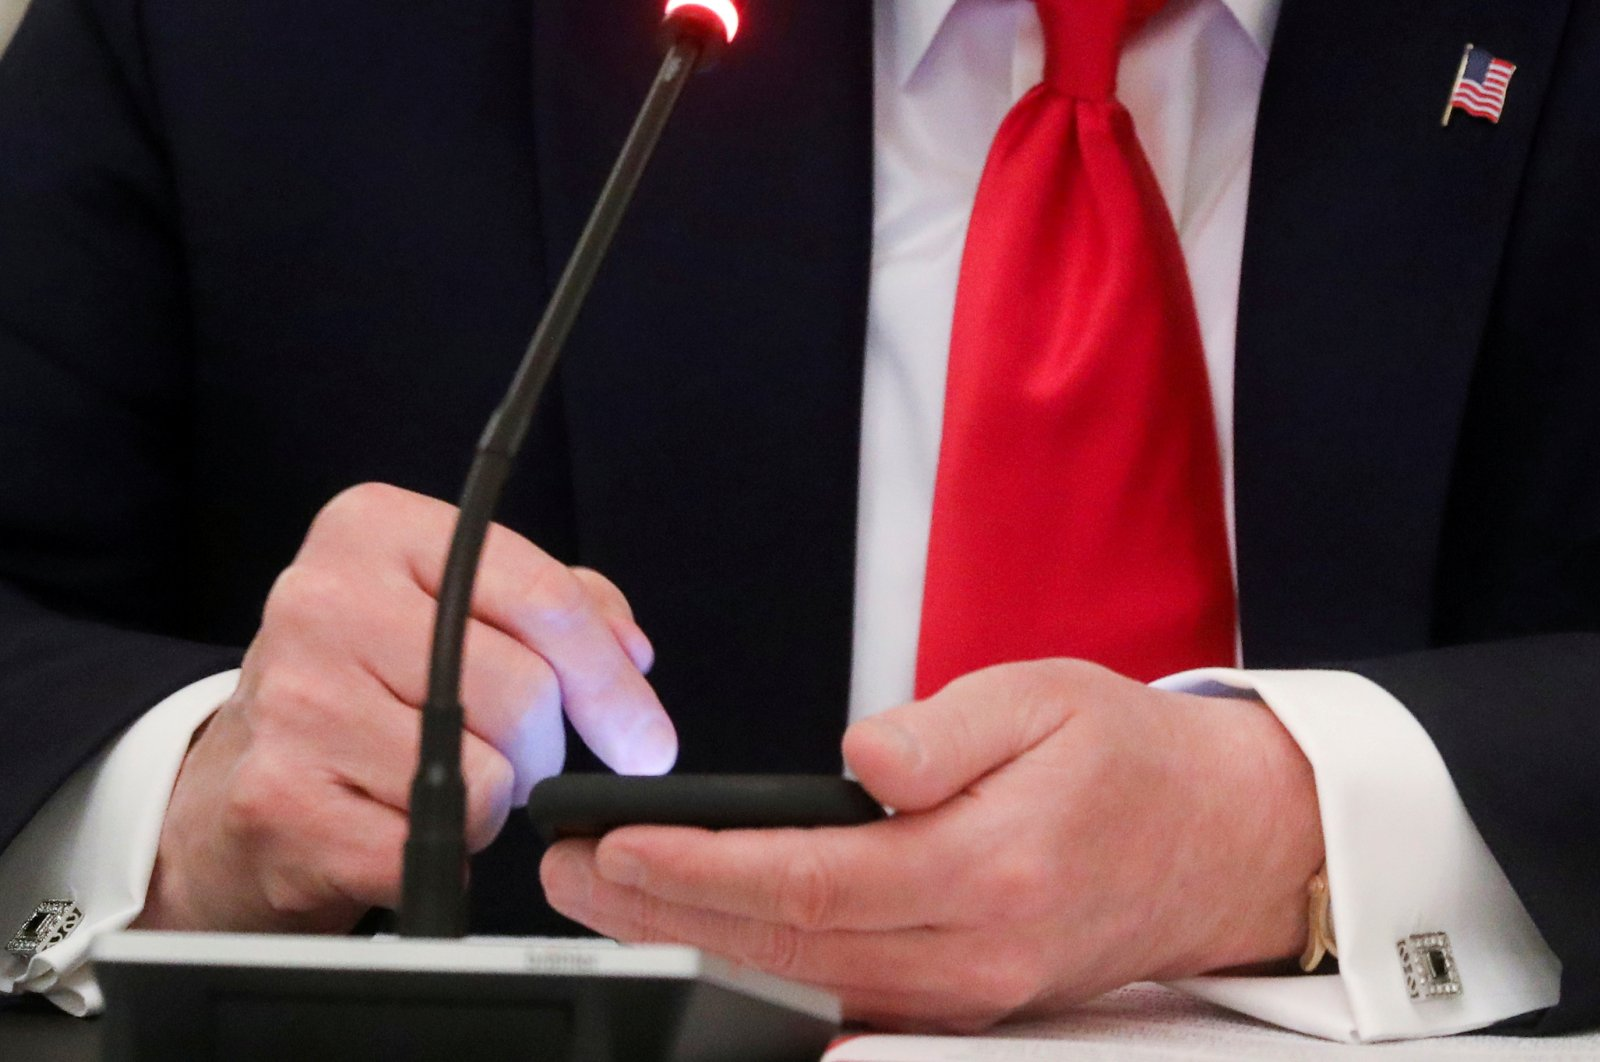 U.S. President Donald Trump taps the screen on a mobile phone at the approximate time a tweet was released from his Twitter account, during a roundtable discussion on the reopening of small businesses in the State Dining Room at the White House in Washington, D.C., U.S., June 18, 2020. (Reuters Photo)